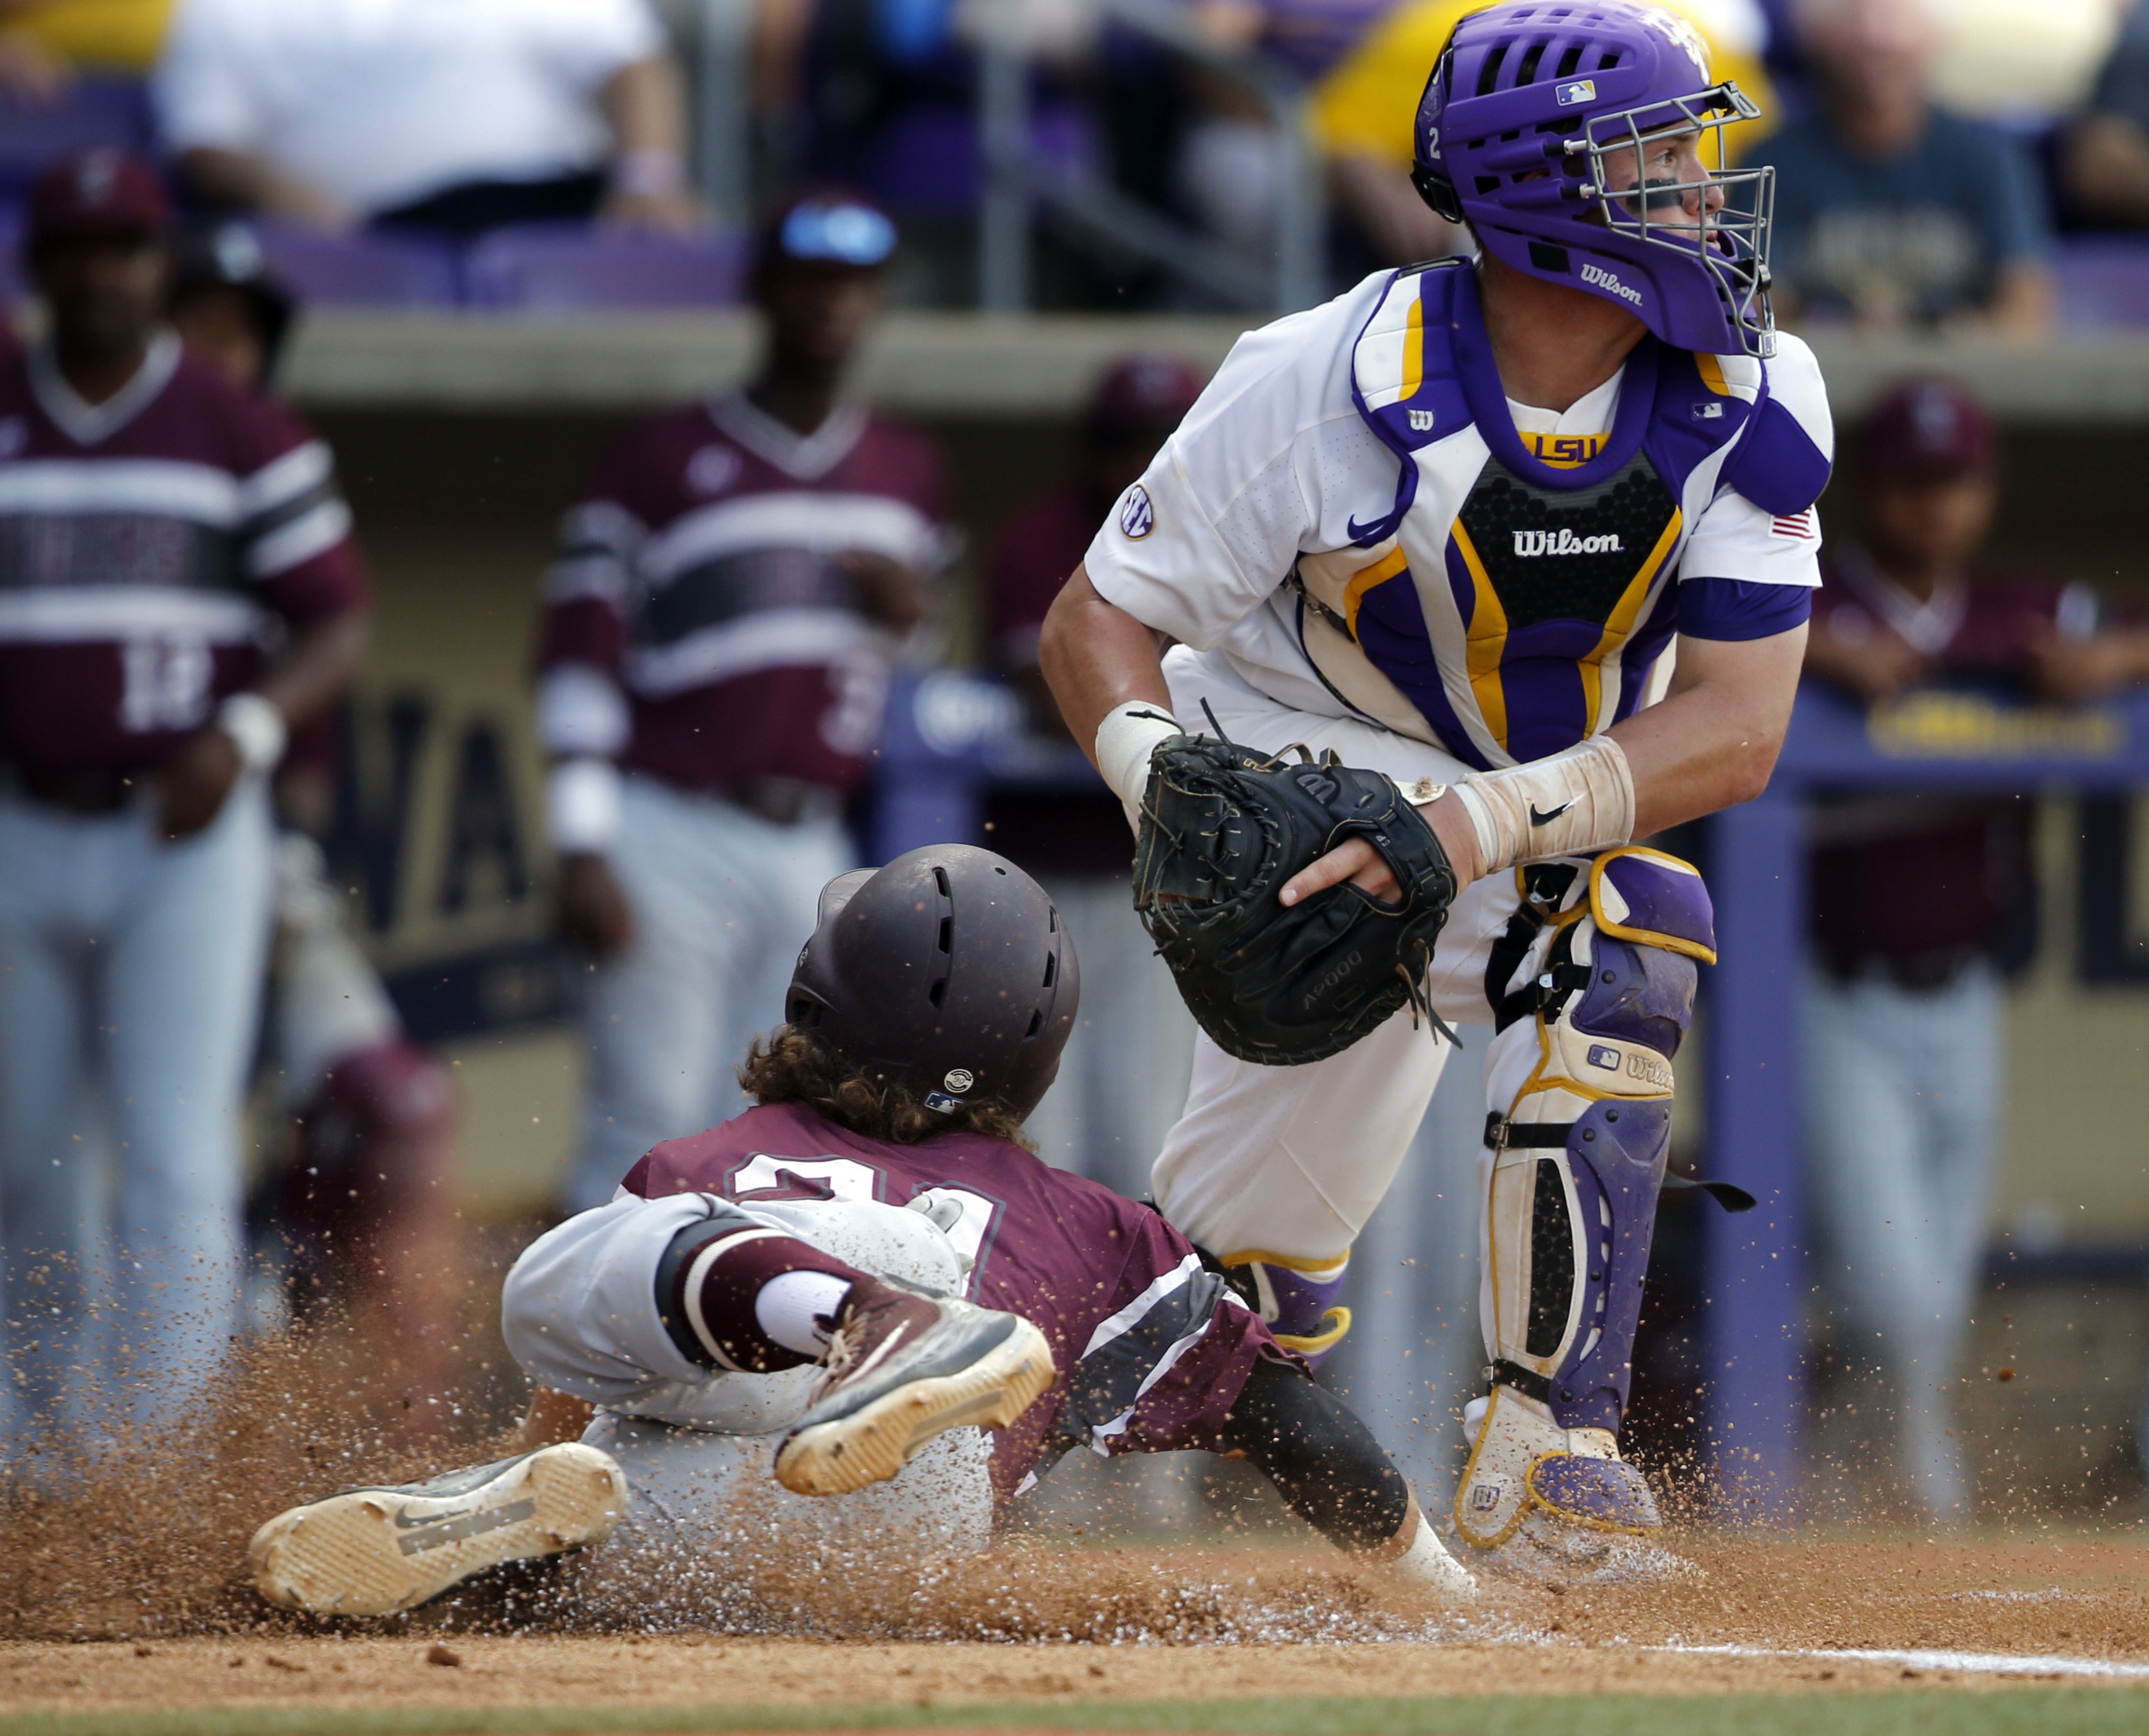 Texas Southern infielder Gaudencio Lucca (21) is tagged out at the plate by LSU catcher Michael Papierski in the first inning of a game at an NCAA college baseball regional tournament in Baton Rouge, La., Friday, June 2, 2017.